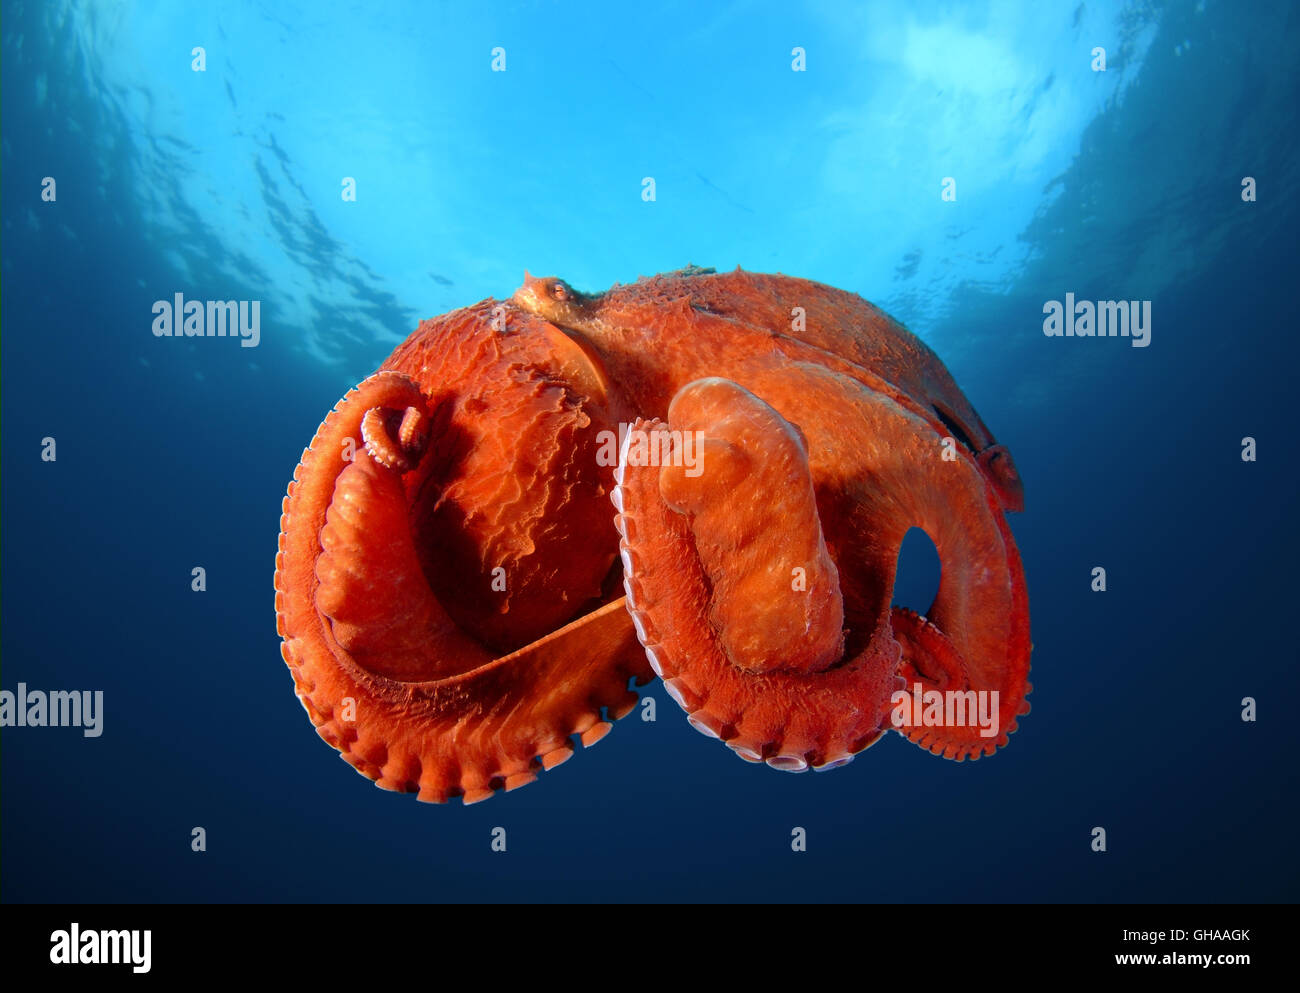 an analysis of the life of octopus dofleini Table 3  estimated life span of selected octopuses   to review  fisheries for octopus dofleini and major fisheries for other octopods elsewhere in .